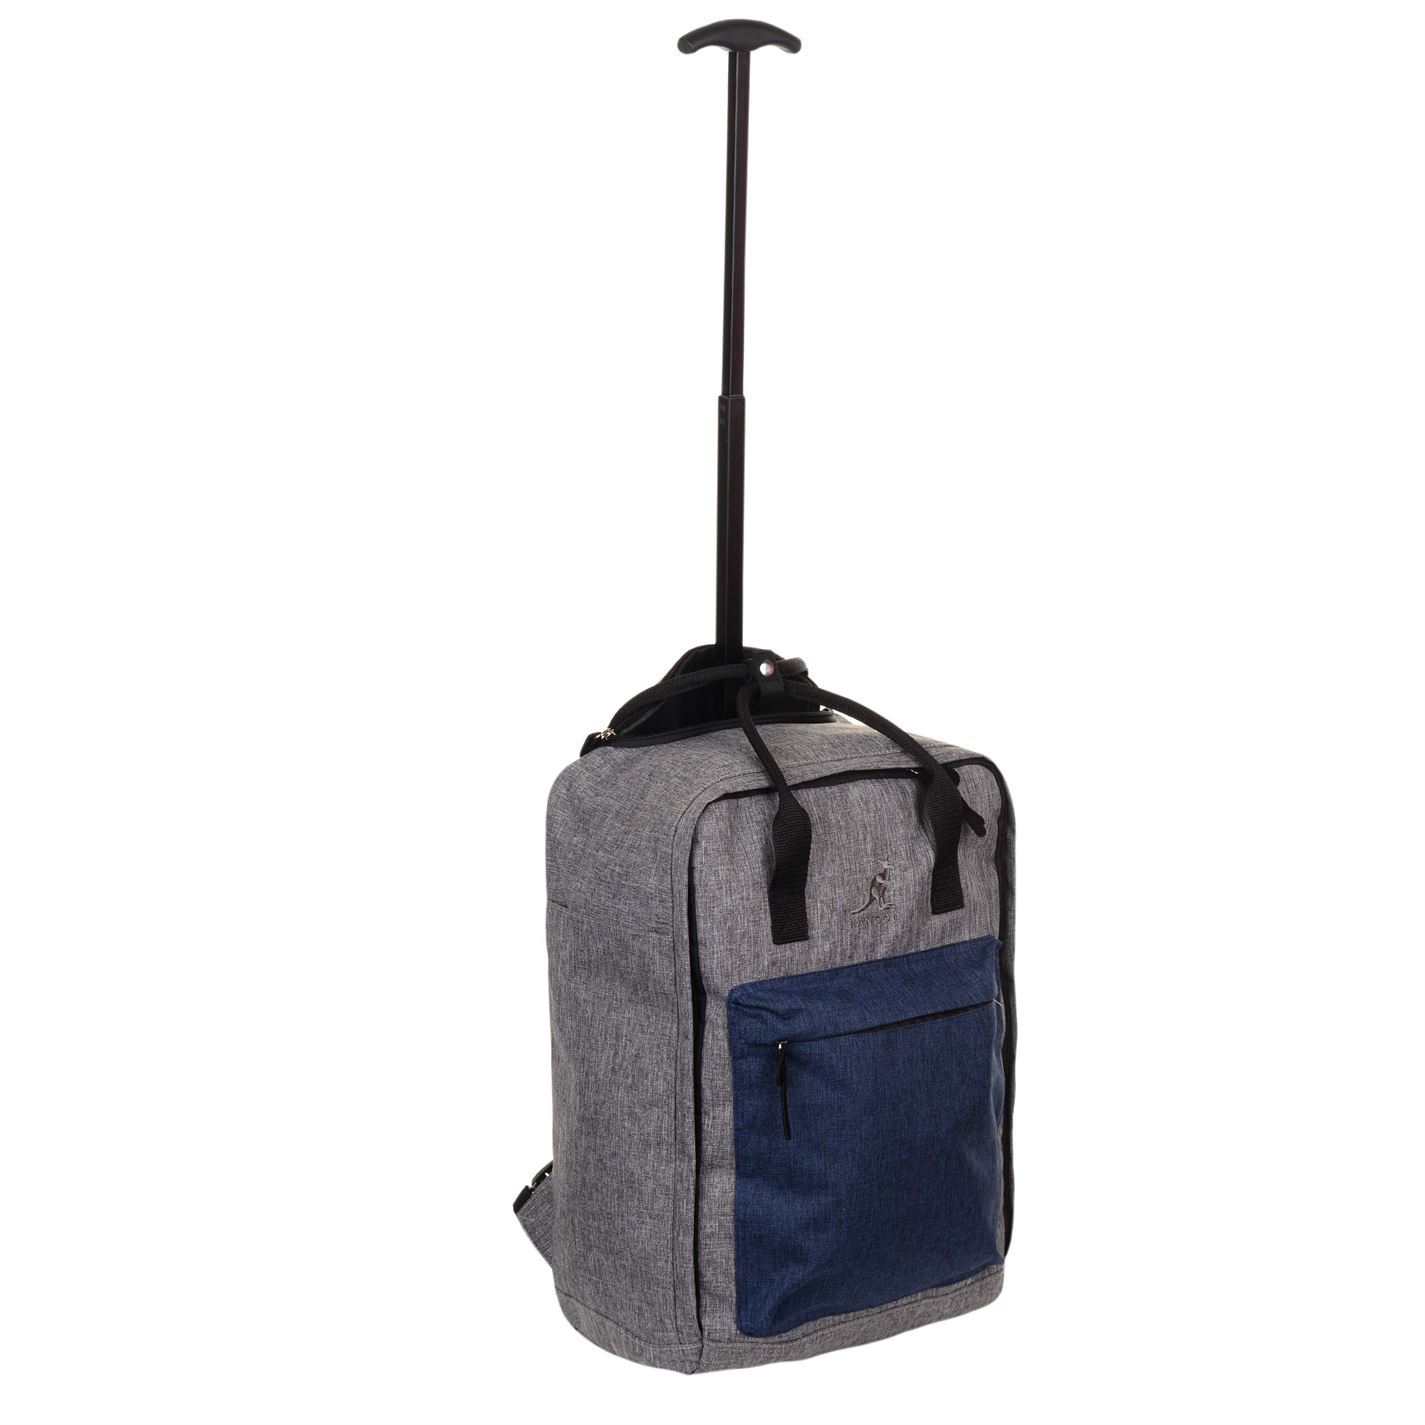 ... Suitcase Lightweight Sport. Kangol 2in1 Cabin Case This 2 in 1 Cabin  Case features a versatile design that allows you to wear as a backpack or  the ... 308c5e489